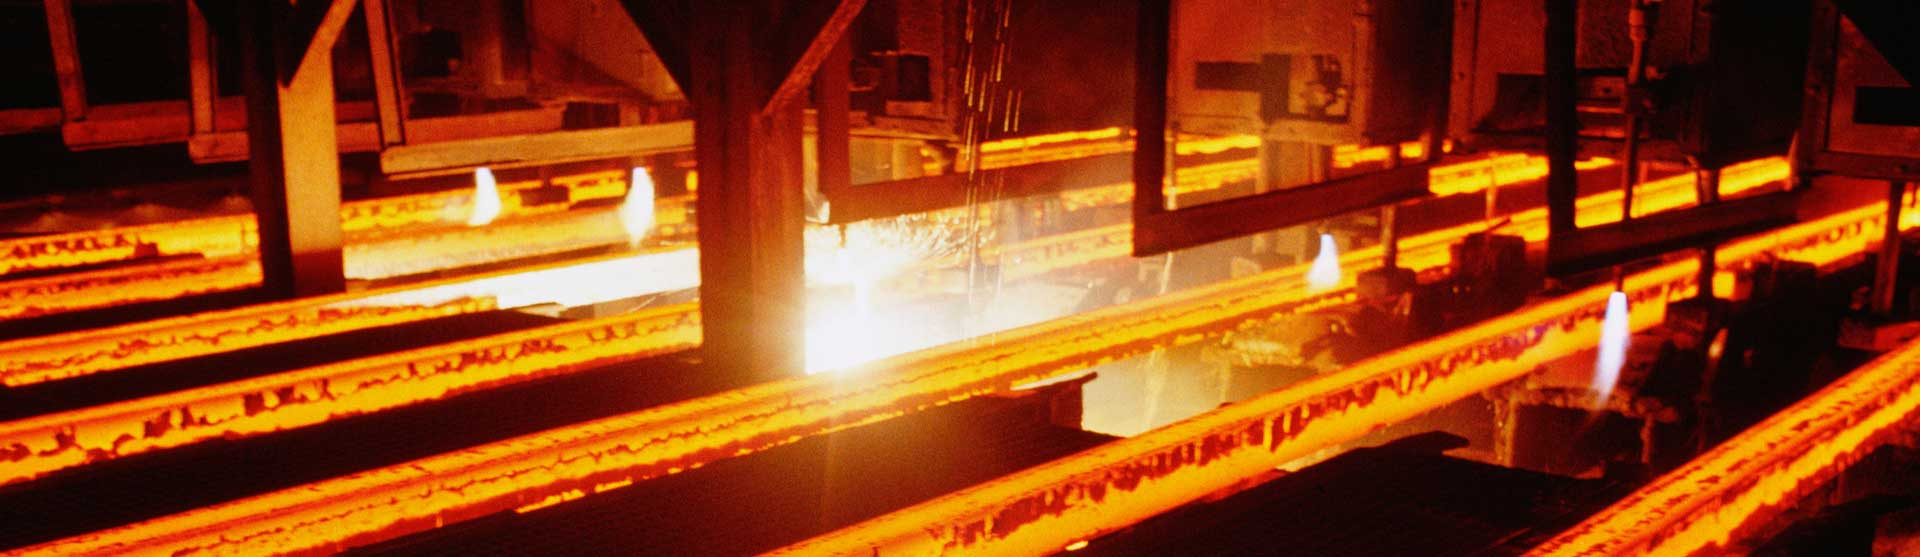 Read more about the article Improvement of Energy Efficiency of Emissions Capture in Steel Melt Shops through a Robust Simulation Framework